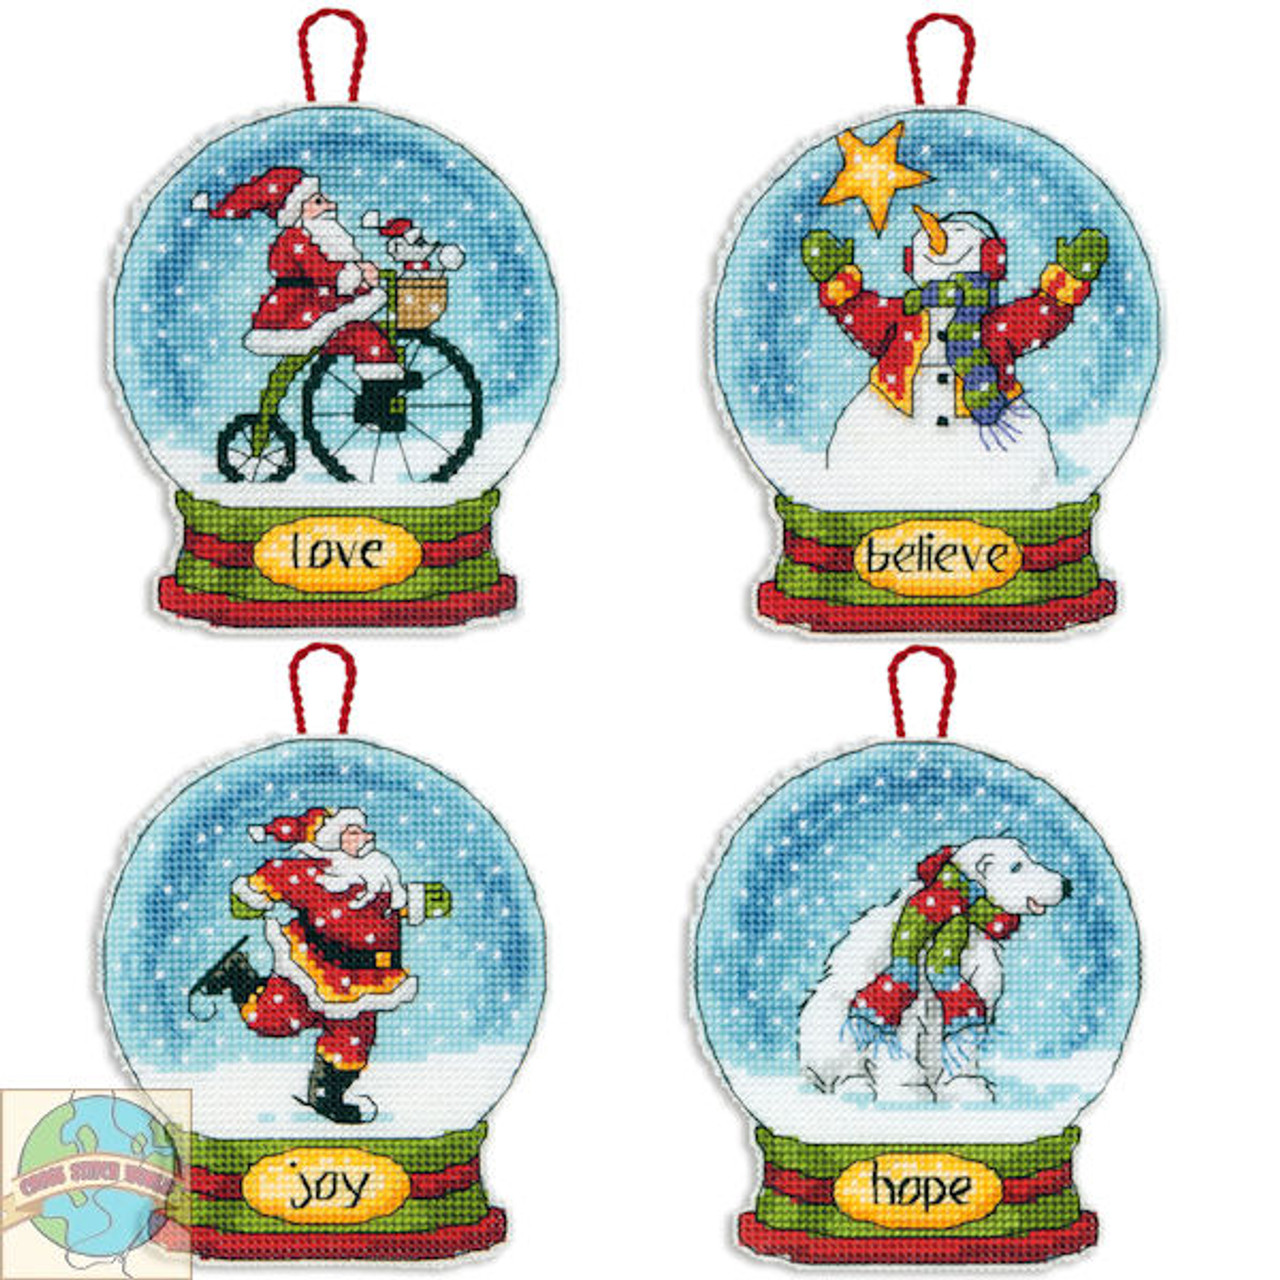 Snow Globe Christmas Tree Ornament Crafts Dimensions Cross Stitch Kit